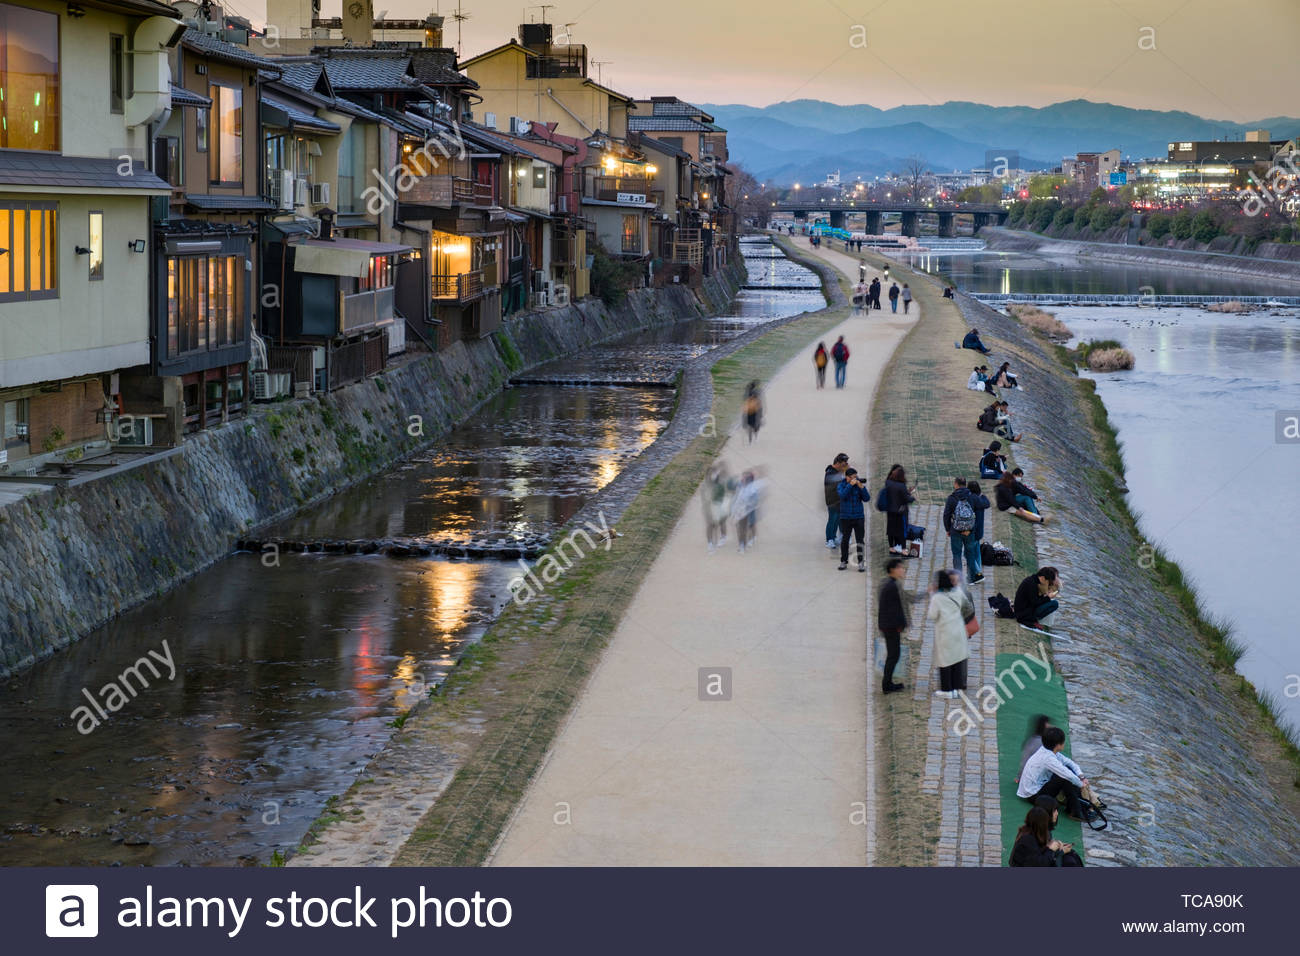 restaurants-along-the-pontocho-overlooking-the-kamogawa-river-at-dusk-kashiwayacho-nakagyo-ku-kyoto-honshu-japan-TCA90K.jpg